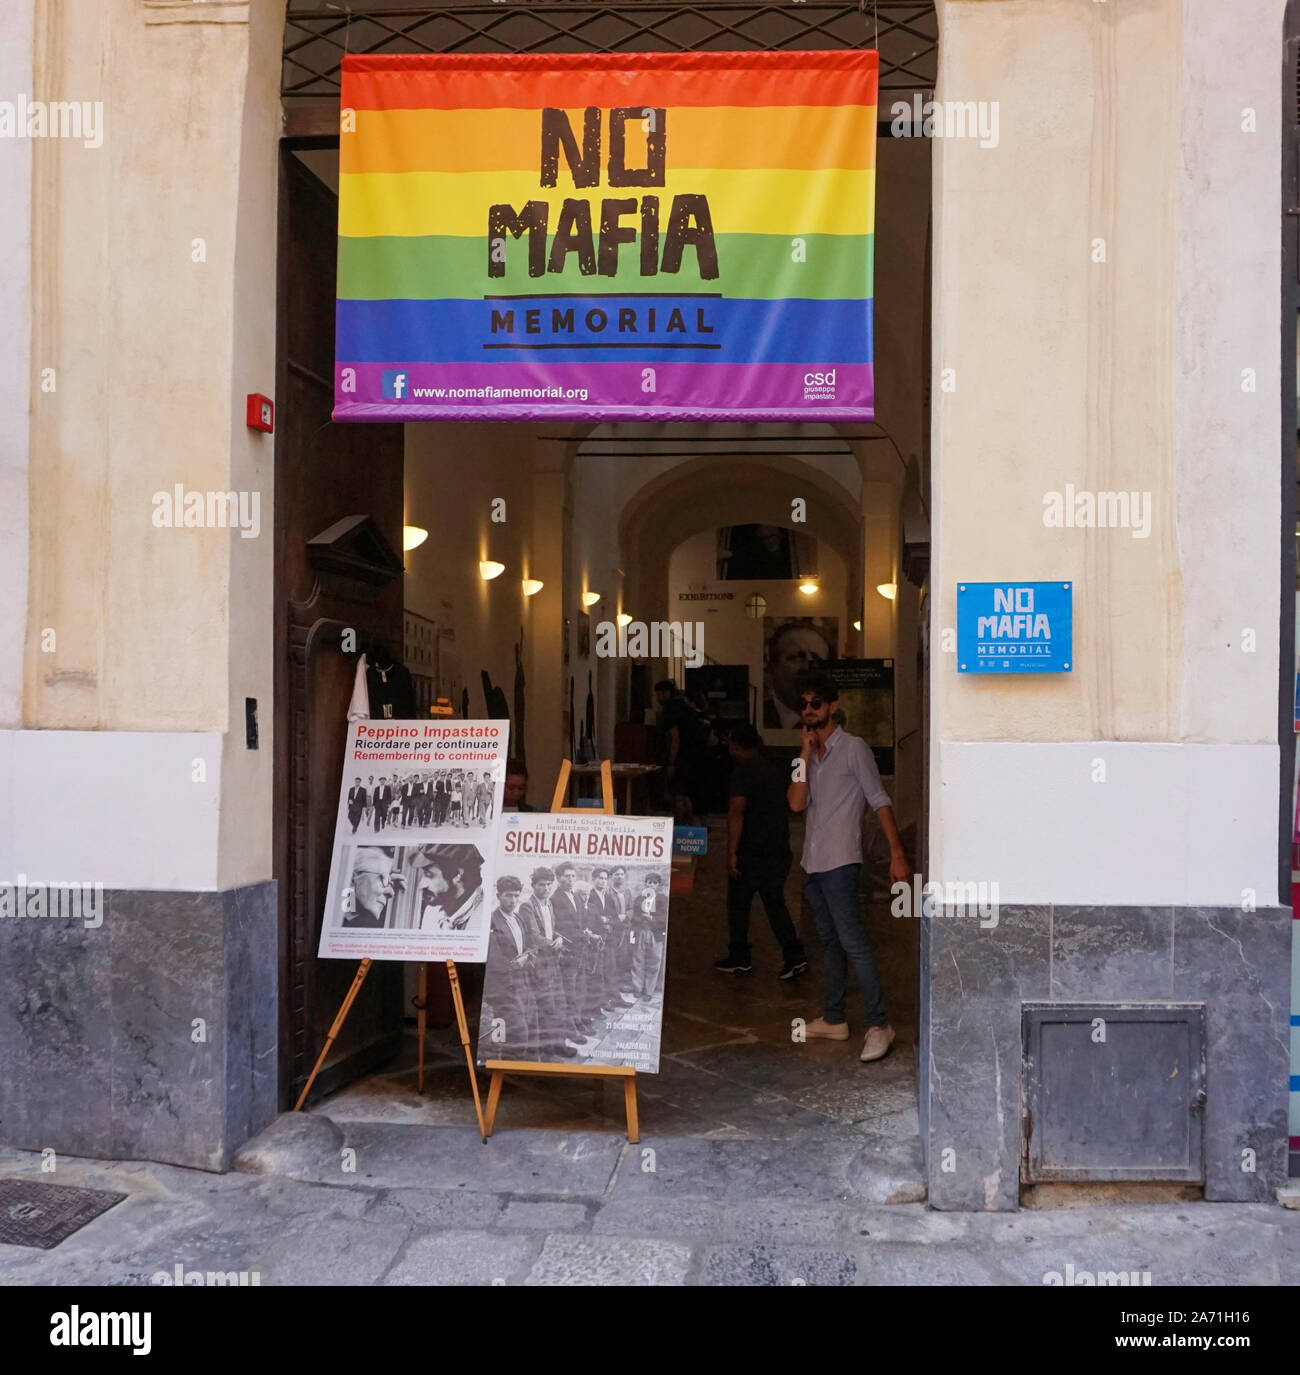 The No Mafia Exhibition in Palermo chronicling the fight against the crimes of the mafia. Stock Photo